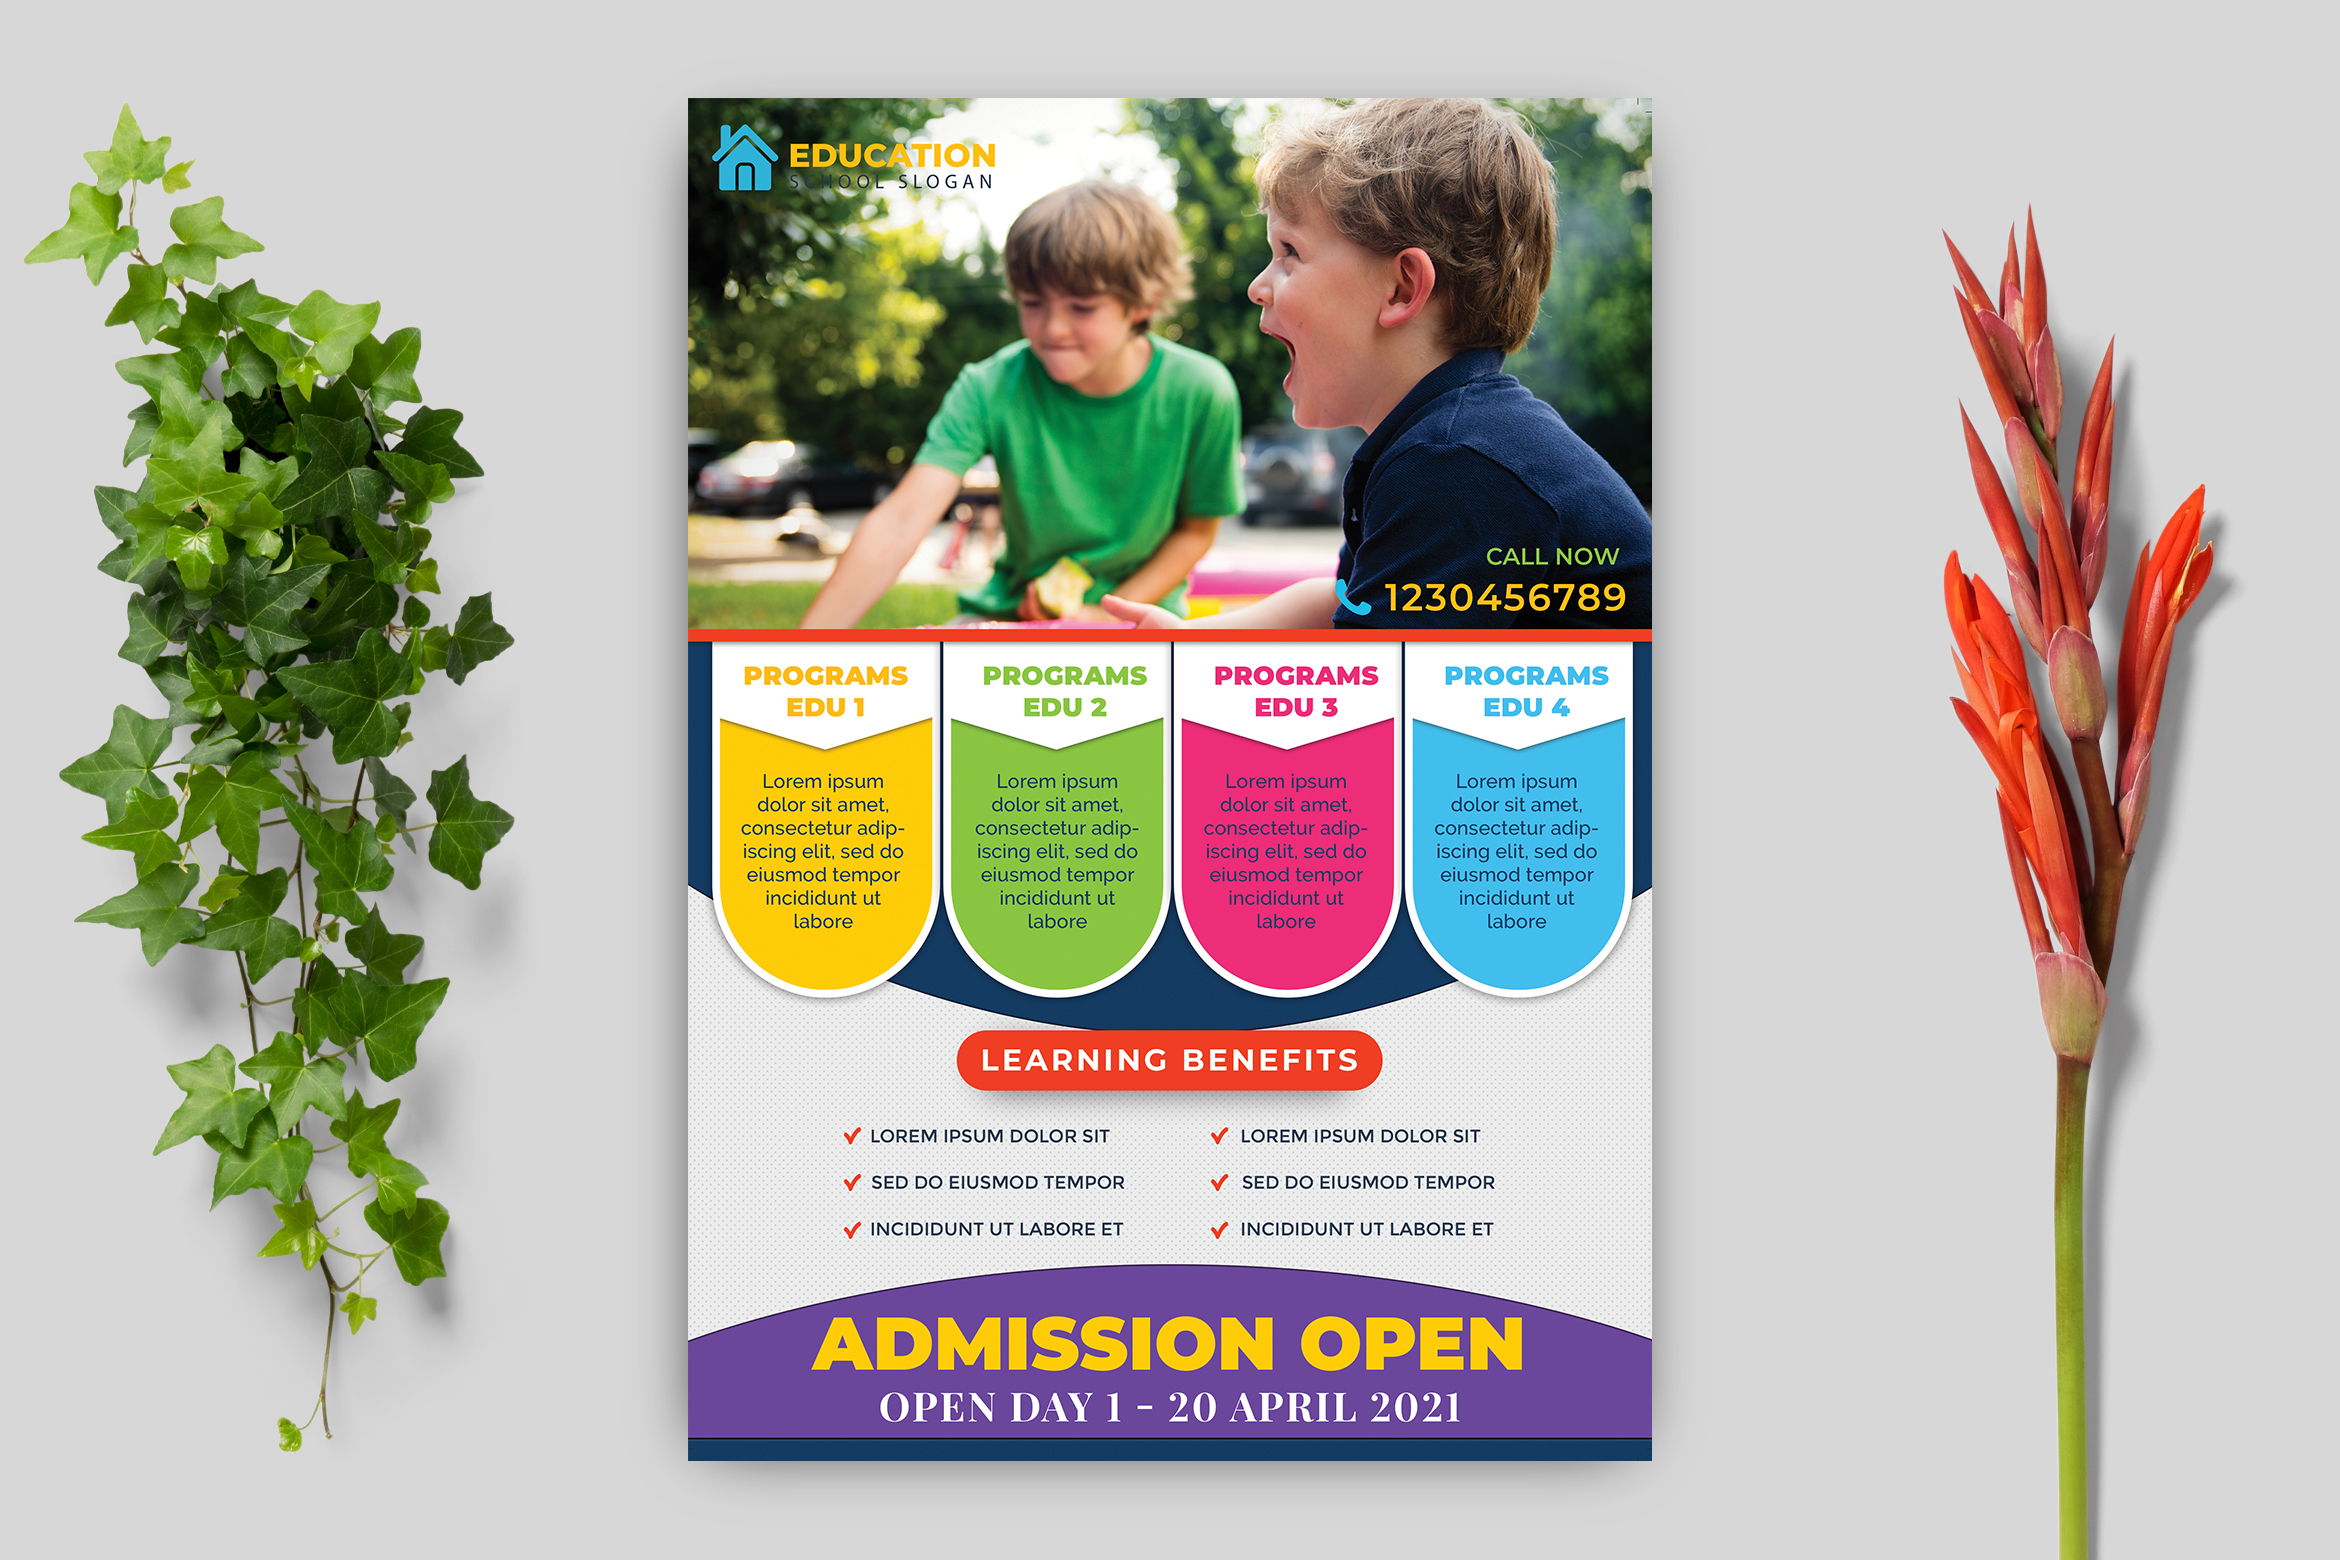 Download Free Education Flyer Template Graphic By Goku4501 Creative Fabrica for Cricut Explore, Silhouette and other cutting machines.